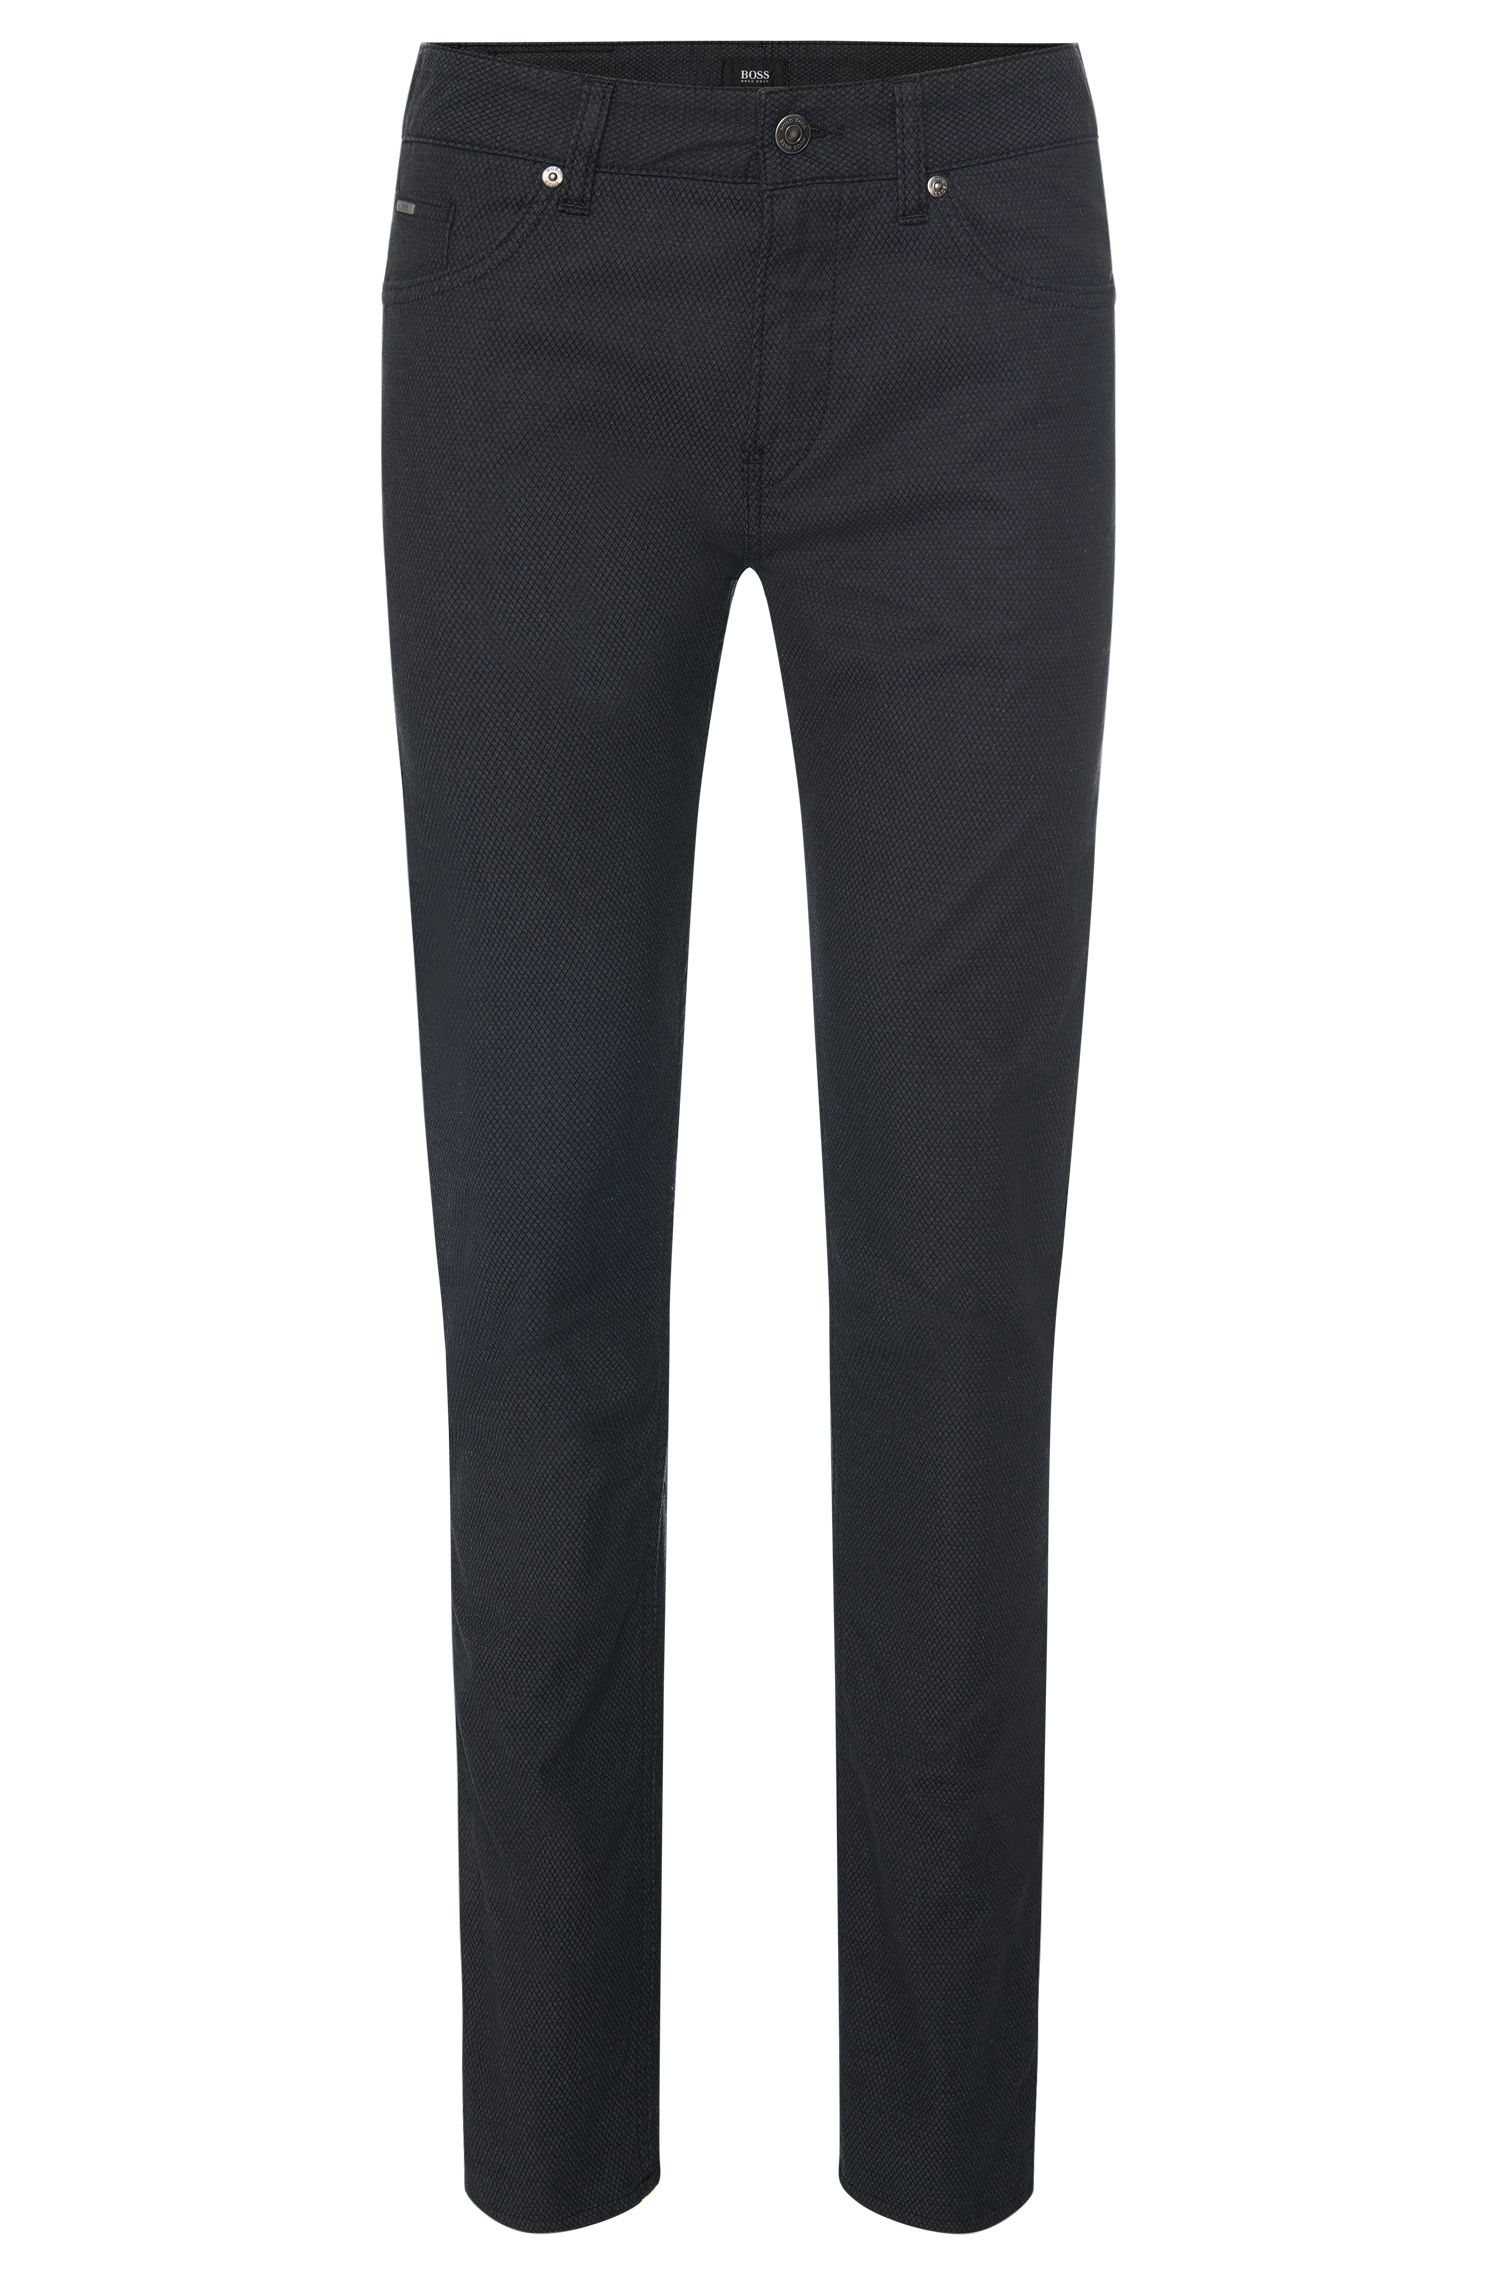 Pantalon Slim Fit en coton stretch structuré : « Delaware3-20 »